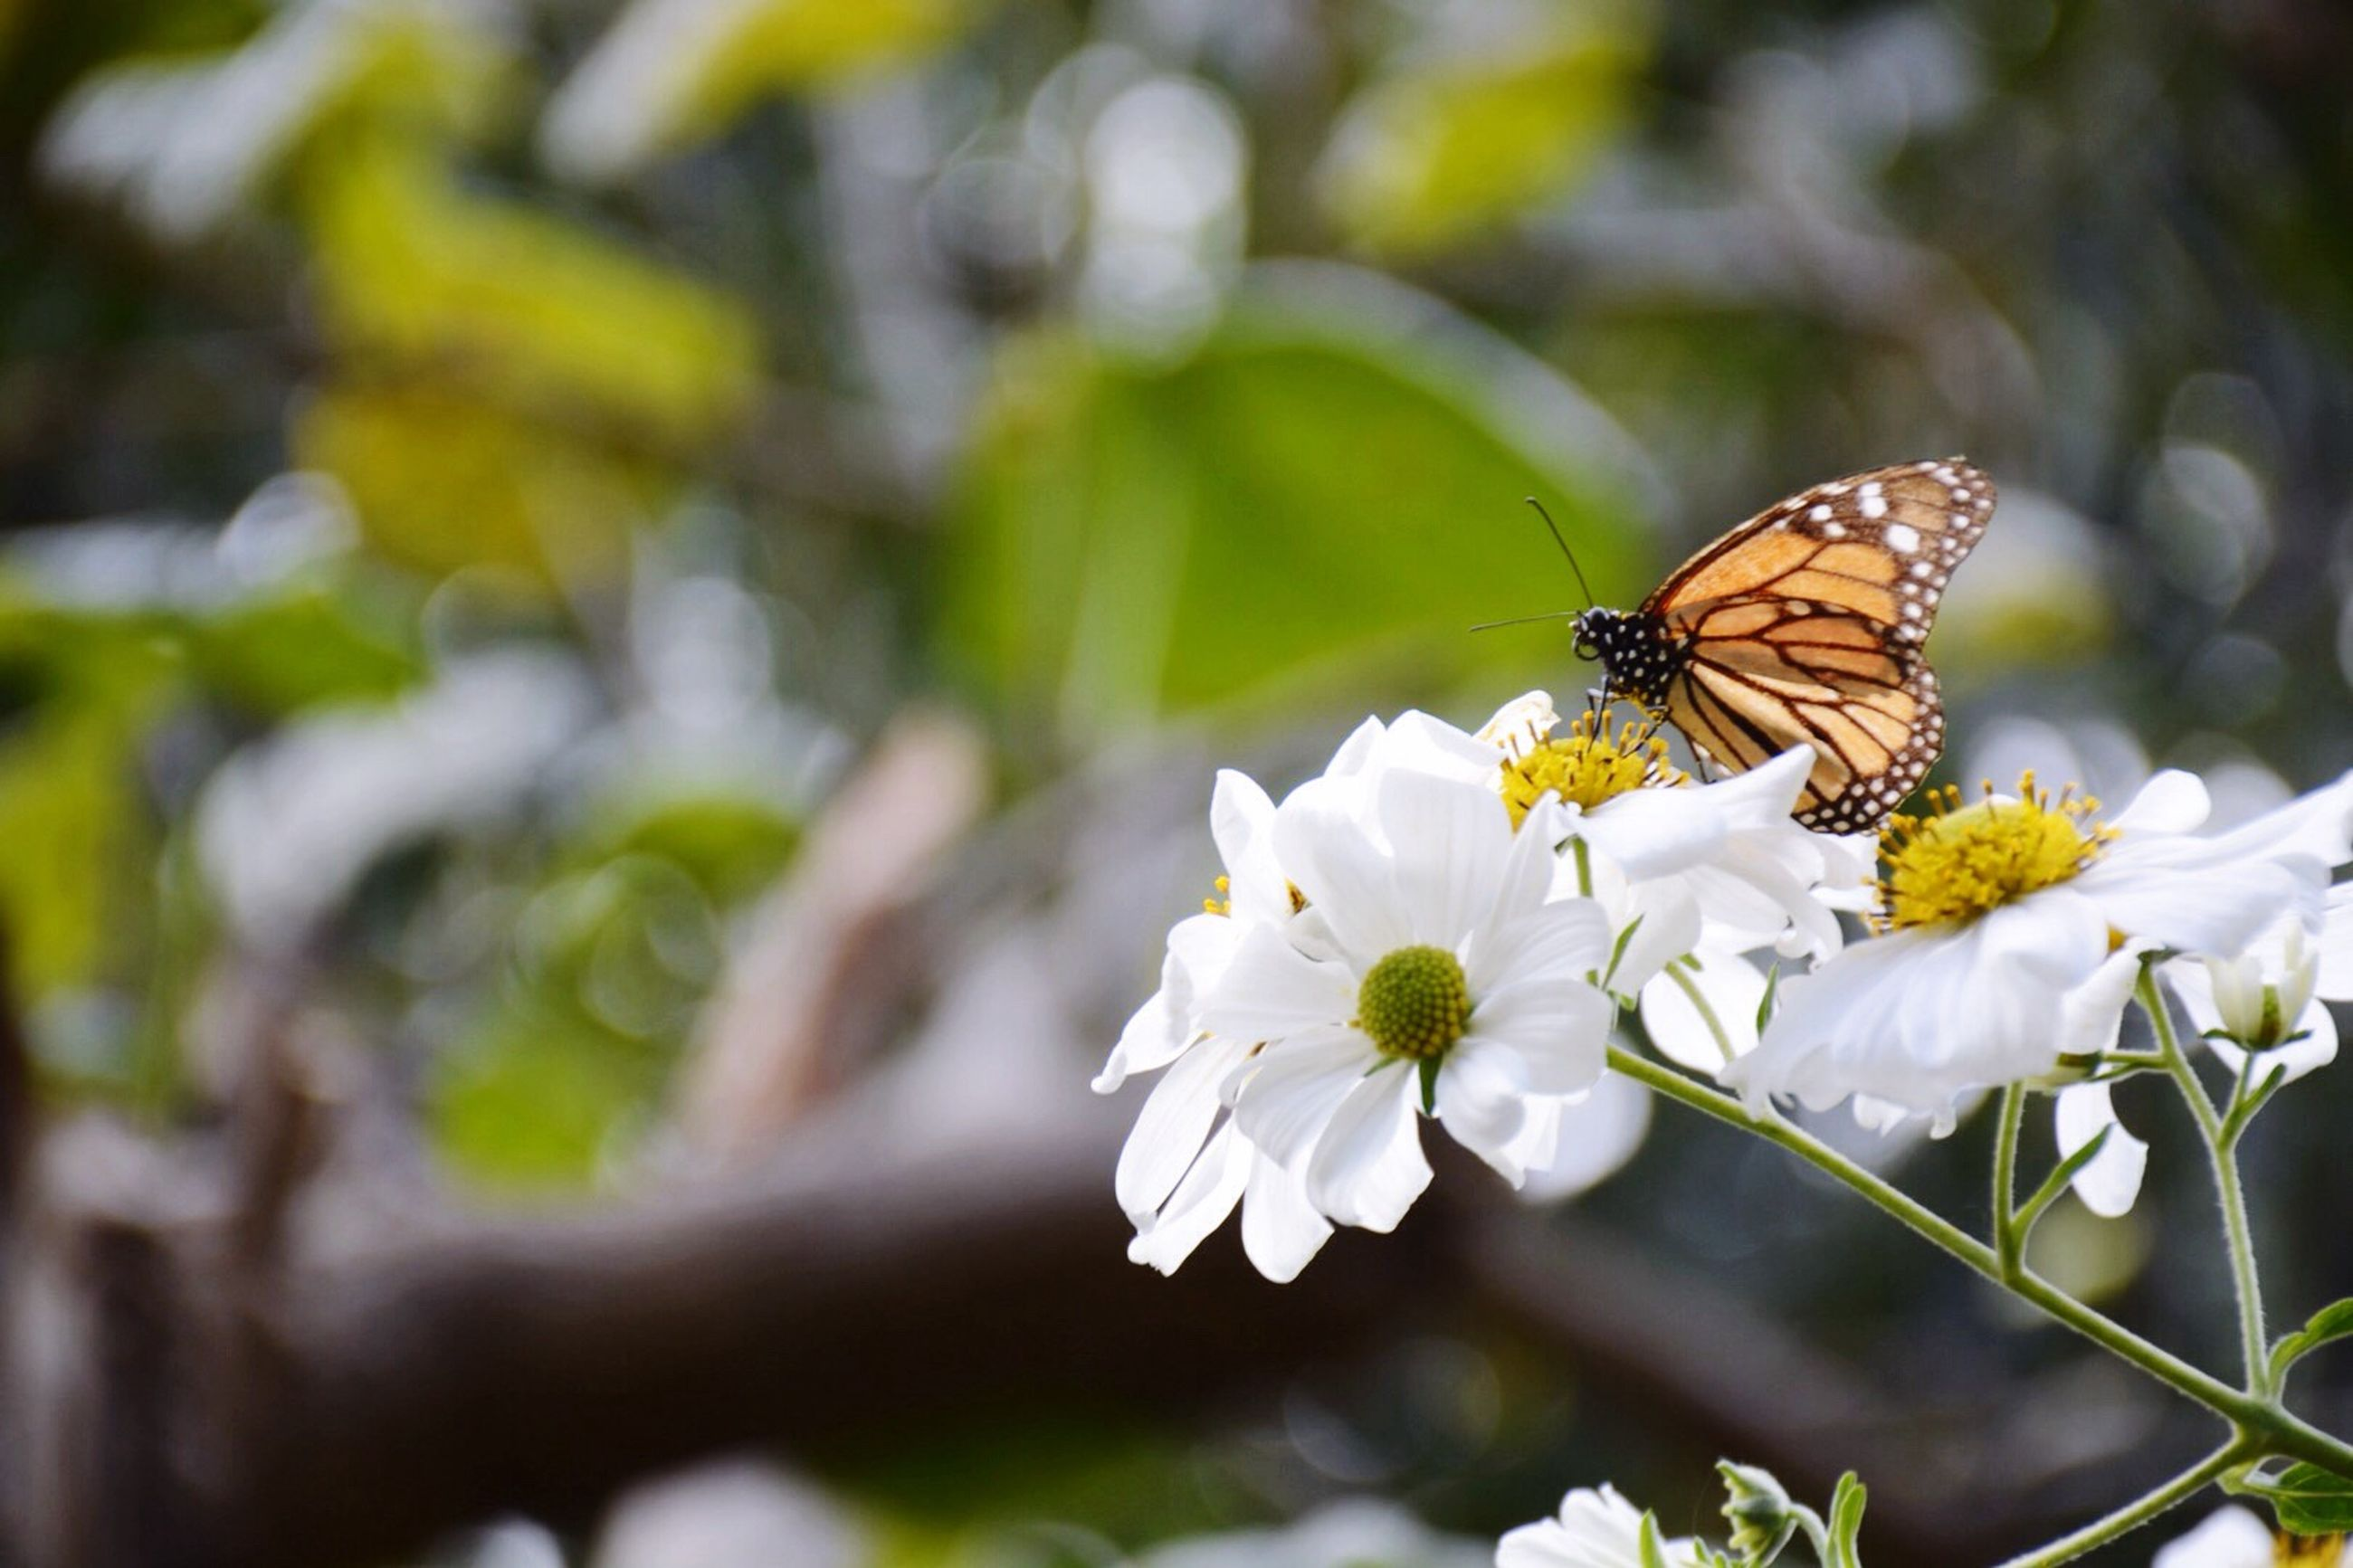 insect, flower, animal themes, animals in the wild, wildlife, one animal, pollination, freshness, fragility, petal, focus on foreground, bee, beauty in nature, growth, nature, close-up, symbiotic relationship, butterfly, white color, butterfly - insect